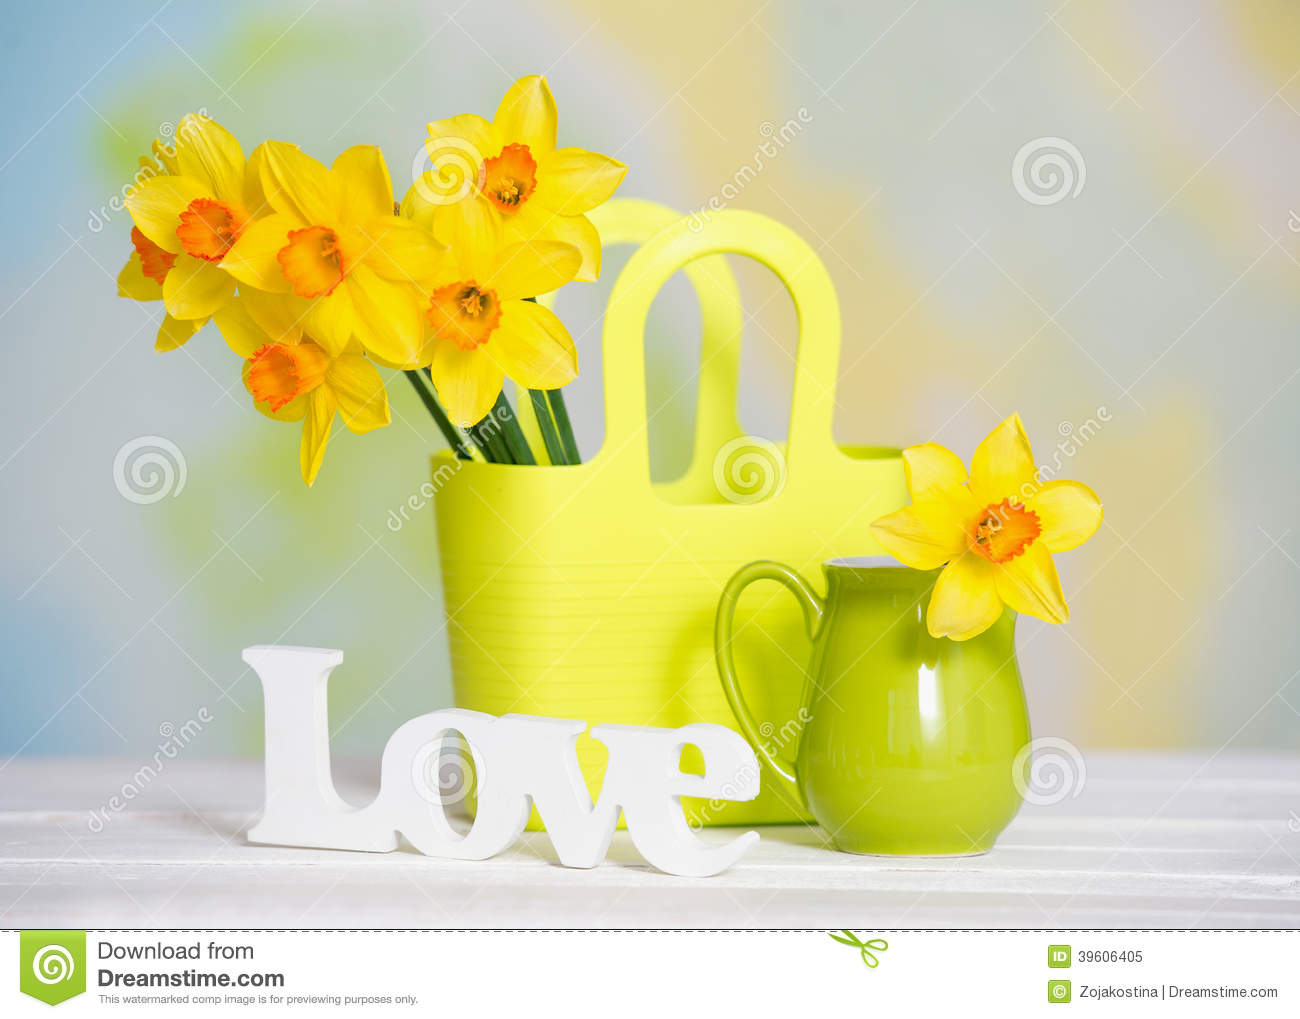 Spring yellow flowers and love sign stock image image of bouquet spring yellow flowers and love sign mightylinksfo